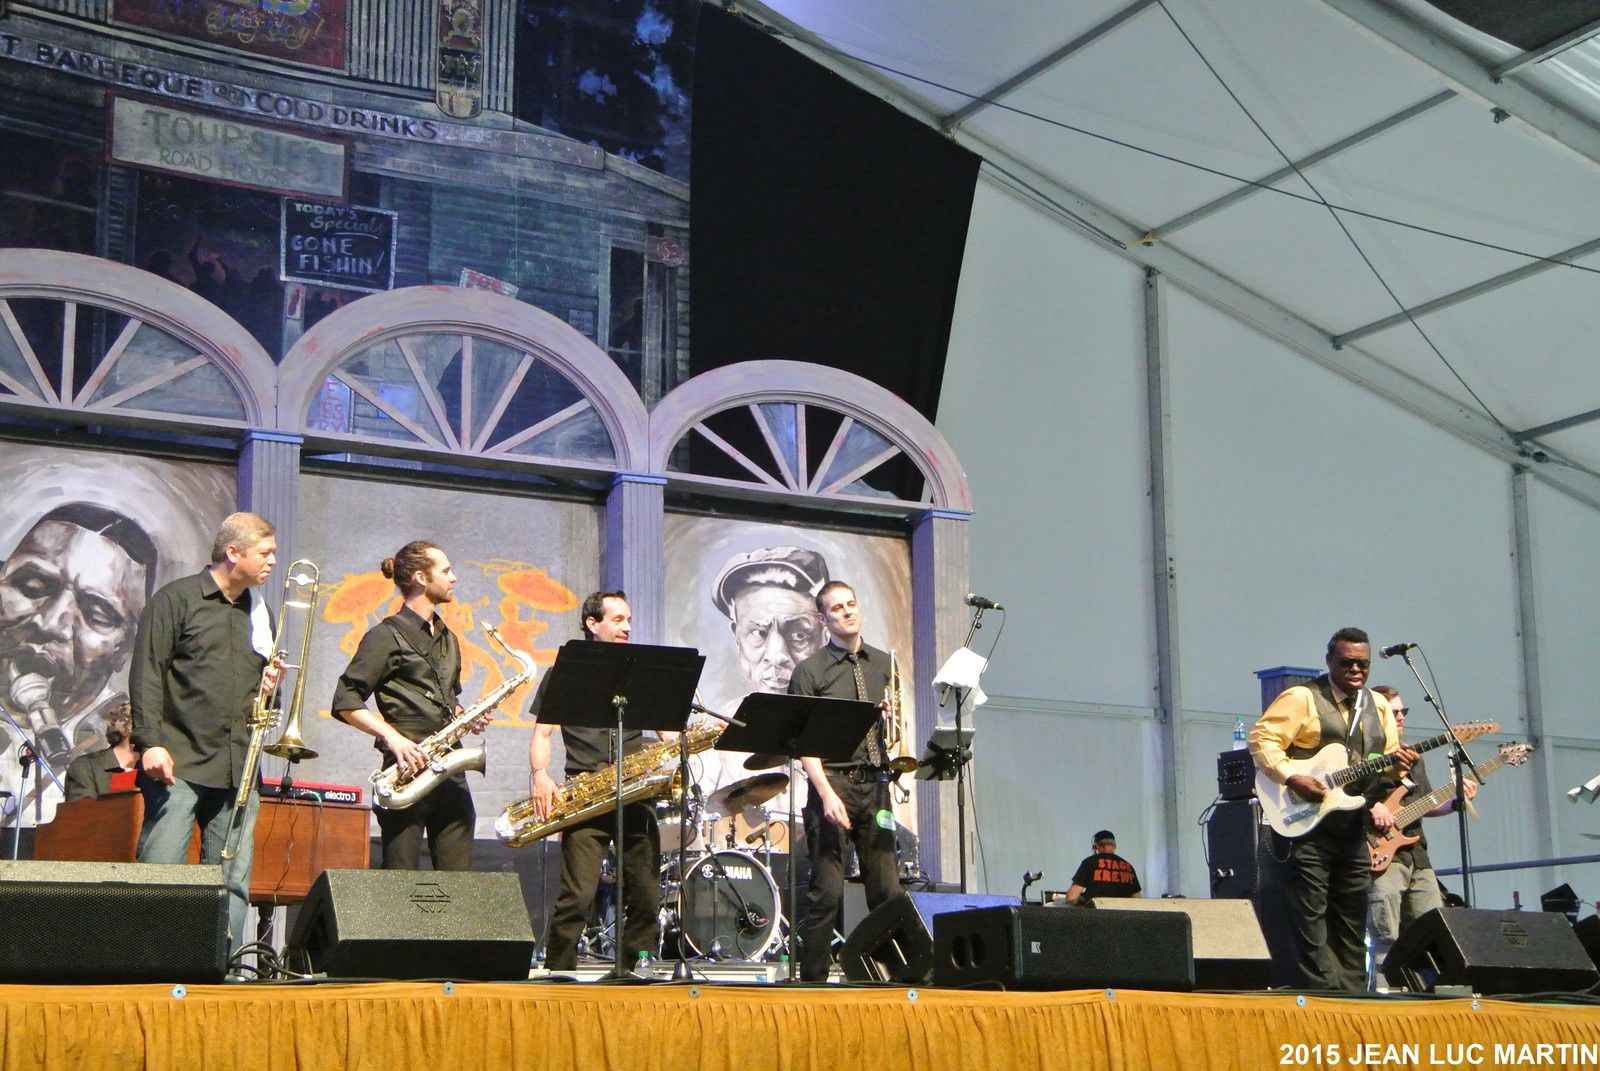 ERNIE VINCENT AND THE TOP NOTES NOLA 2015